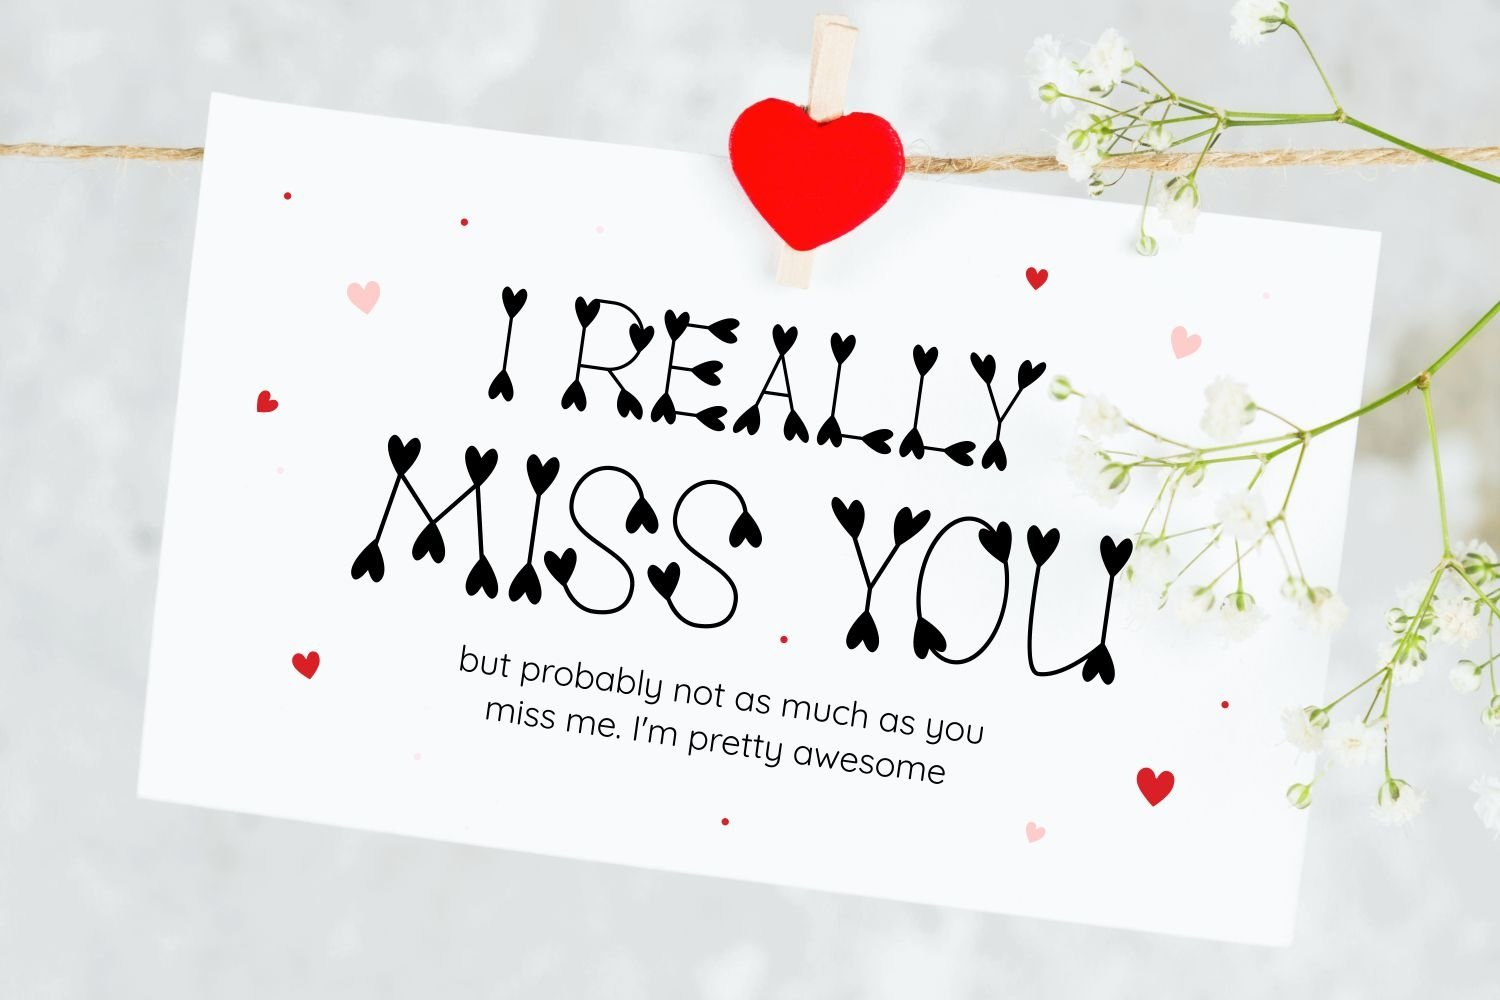 Truelove - Cute and Lovely Display Typeface example image 2